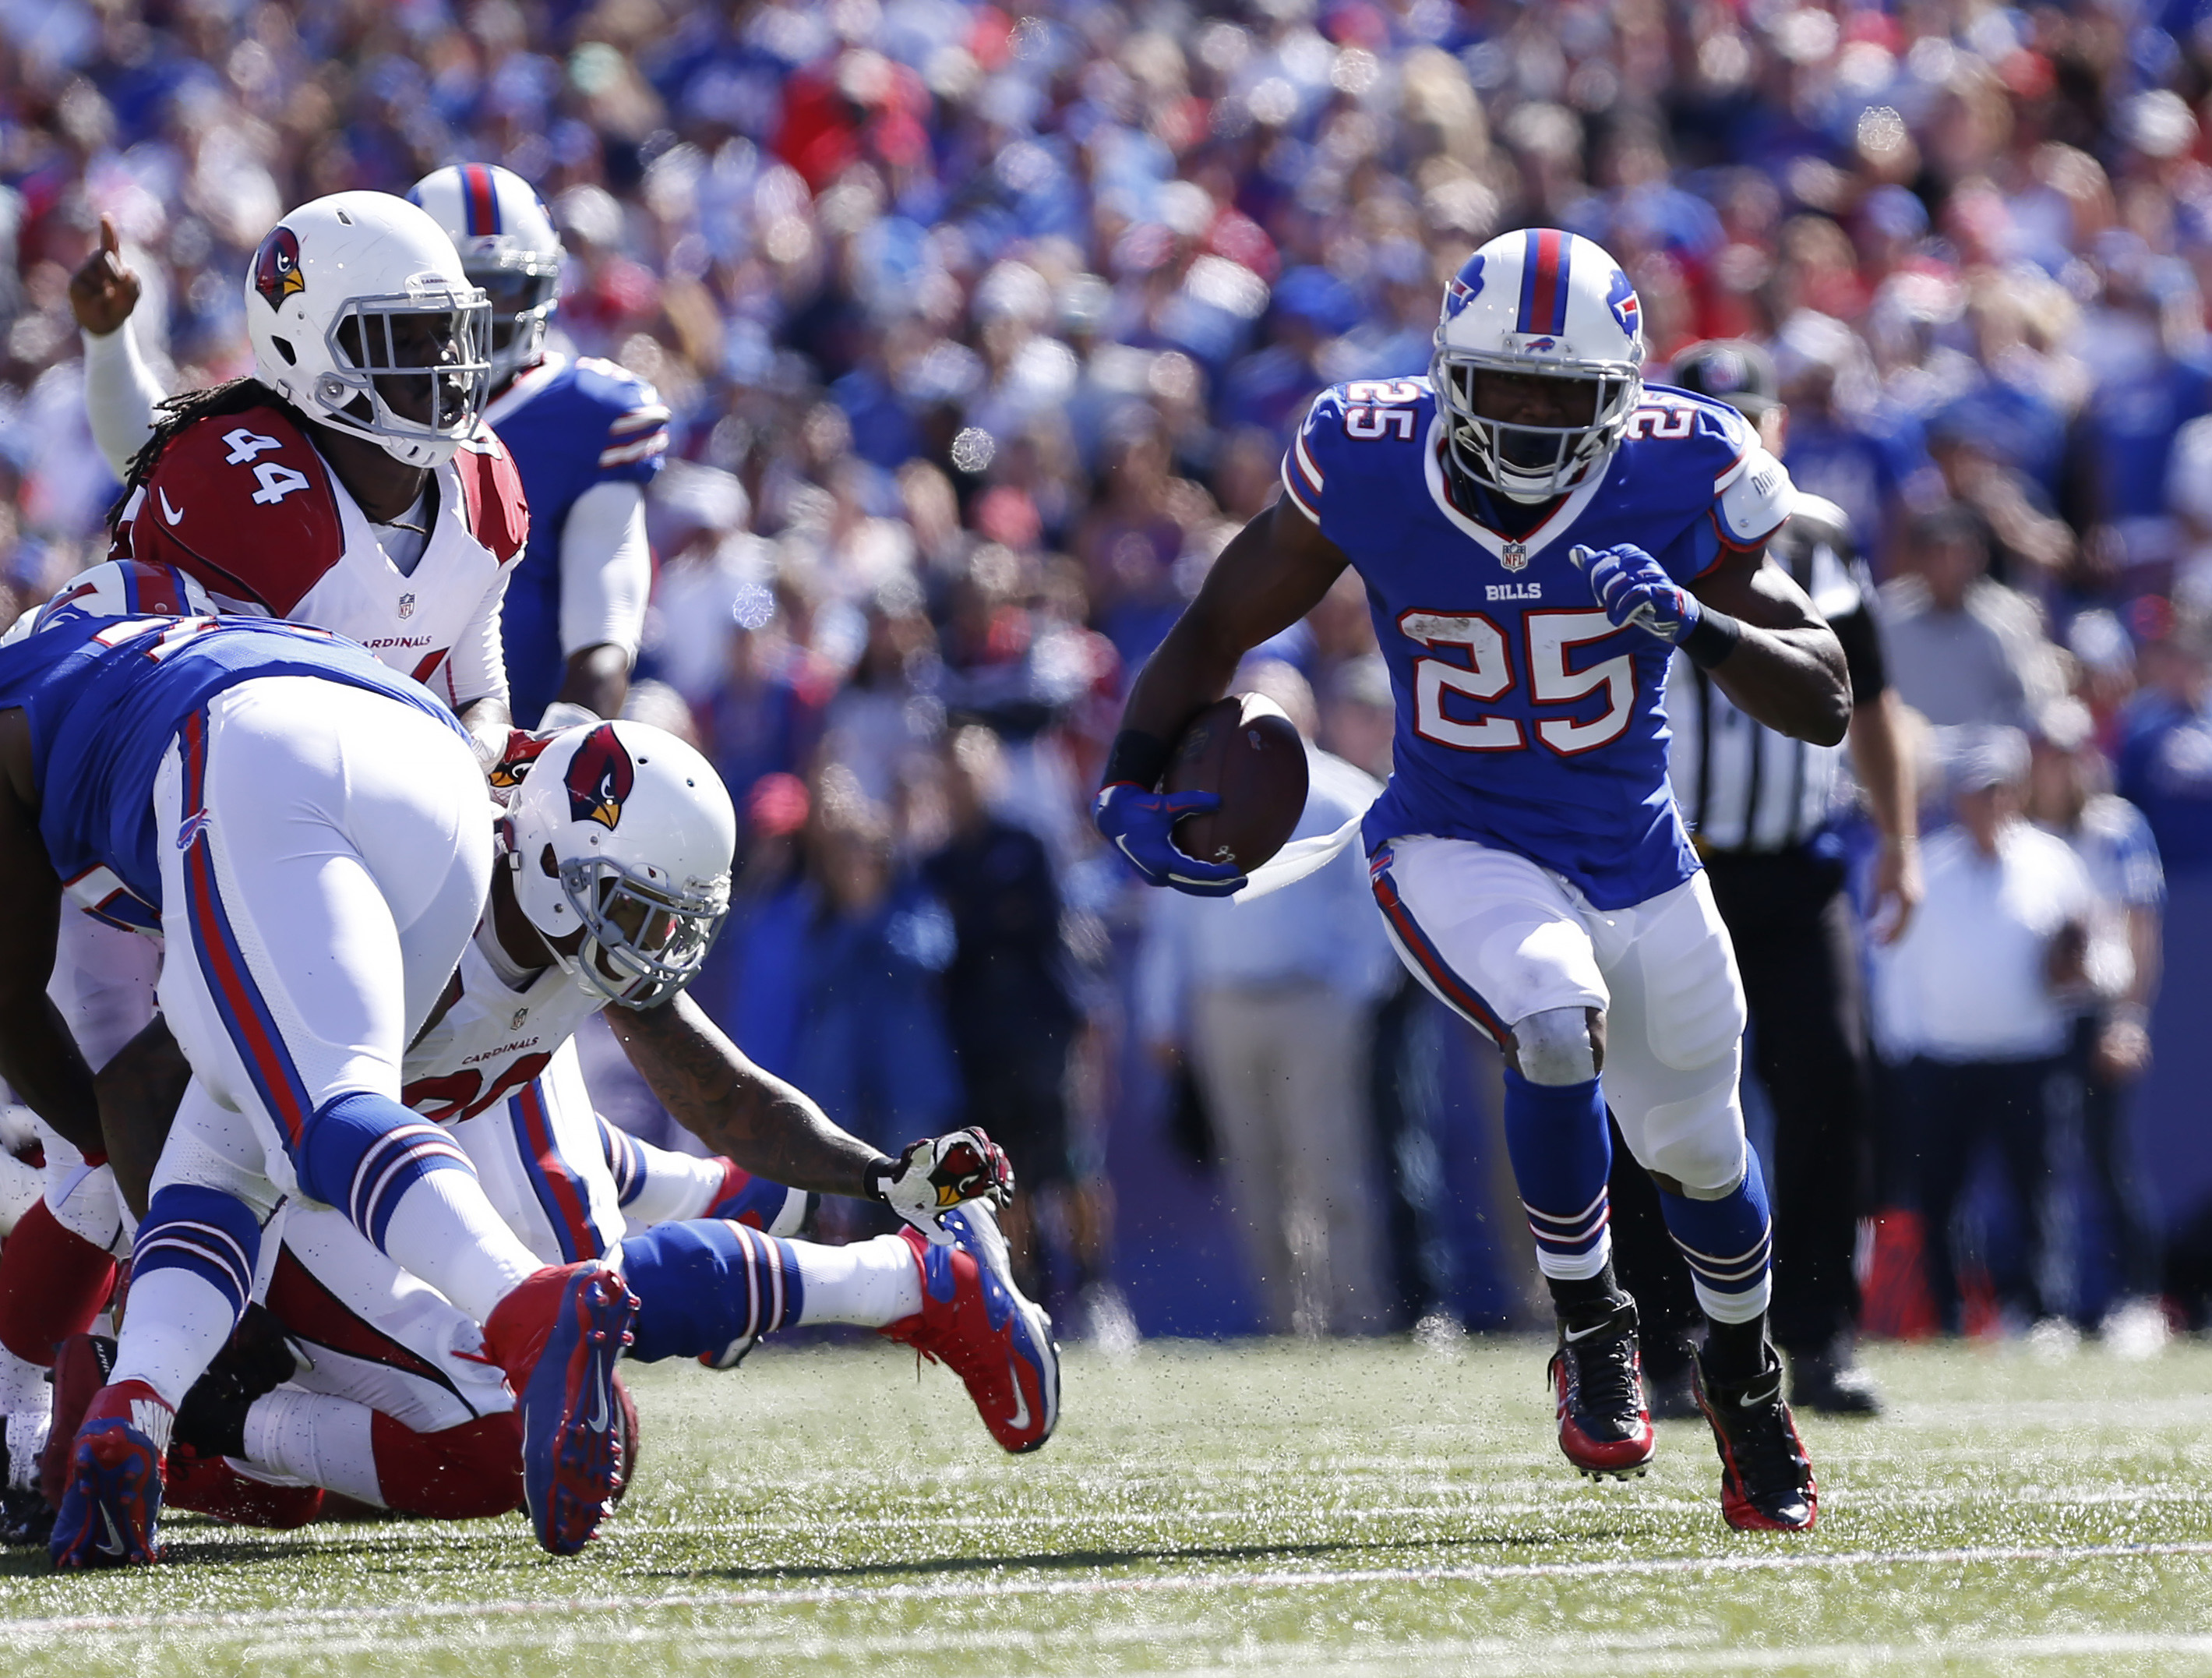 Bills Upset Cardinals to Move to 1-2